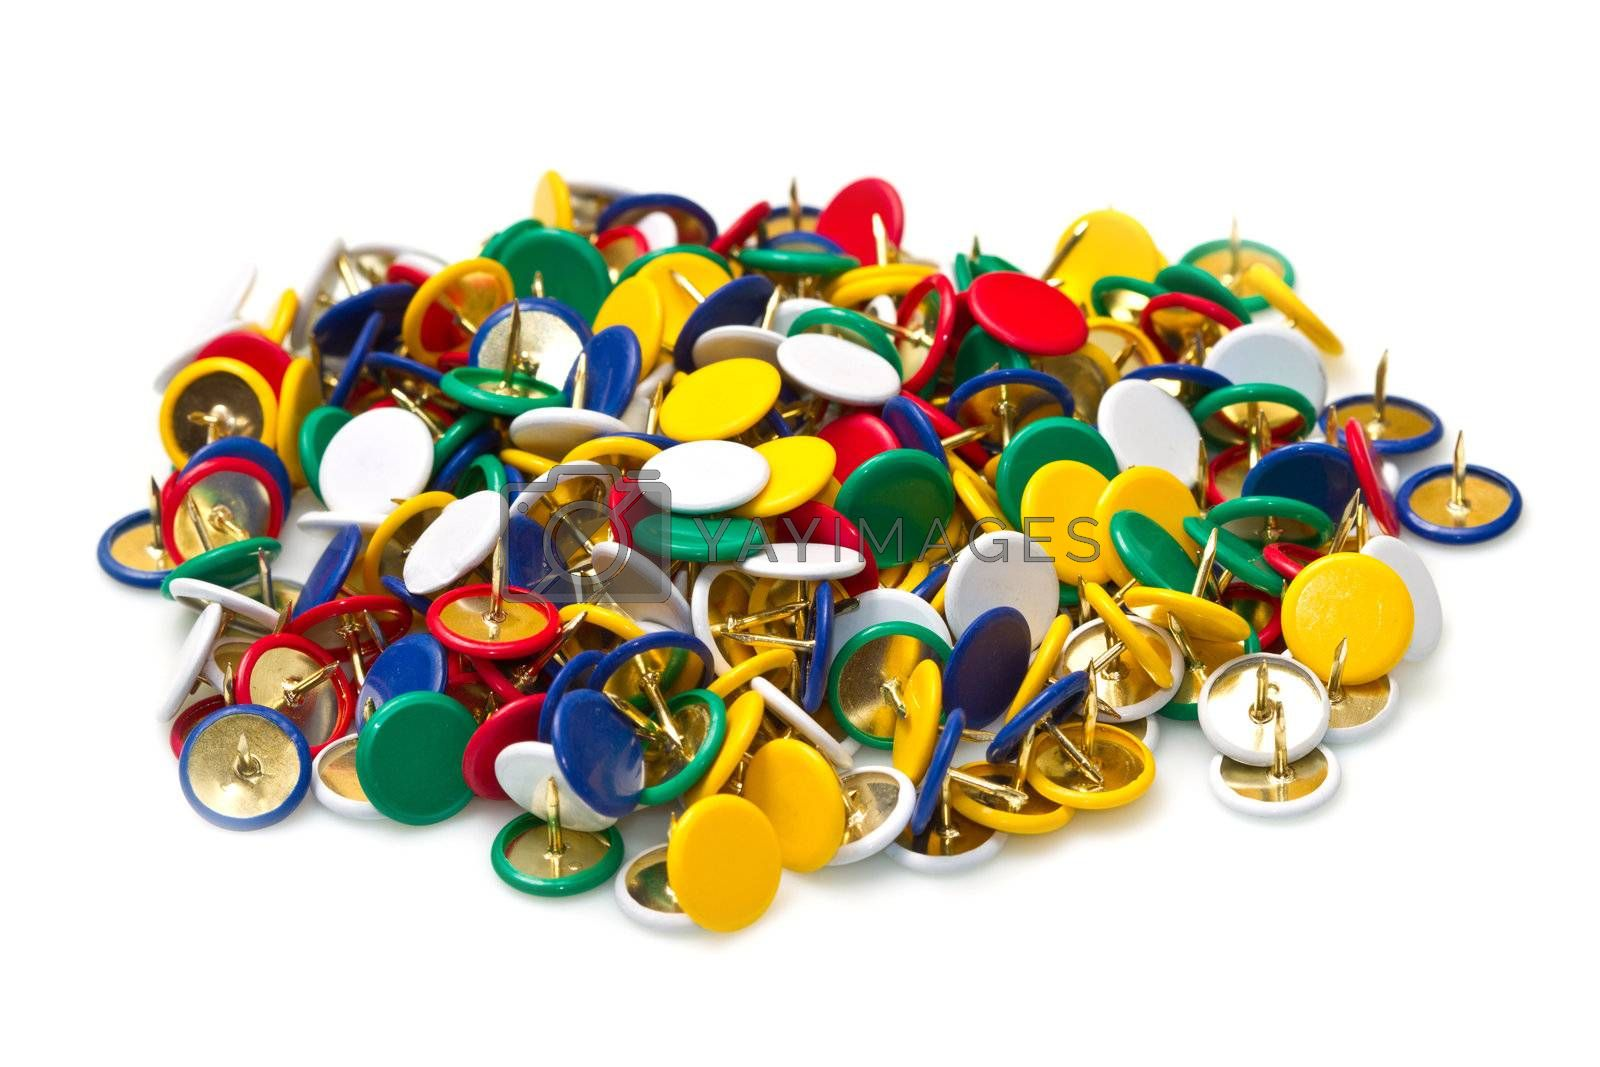 a group of colored pushpins